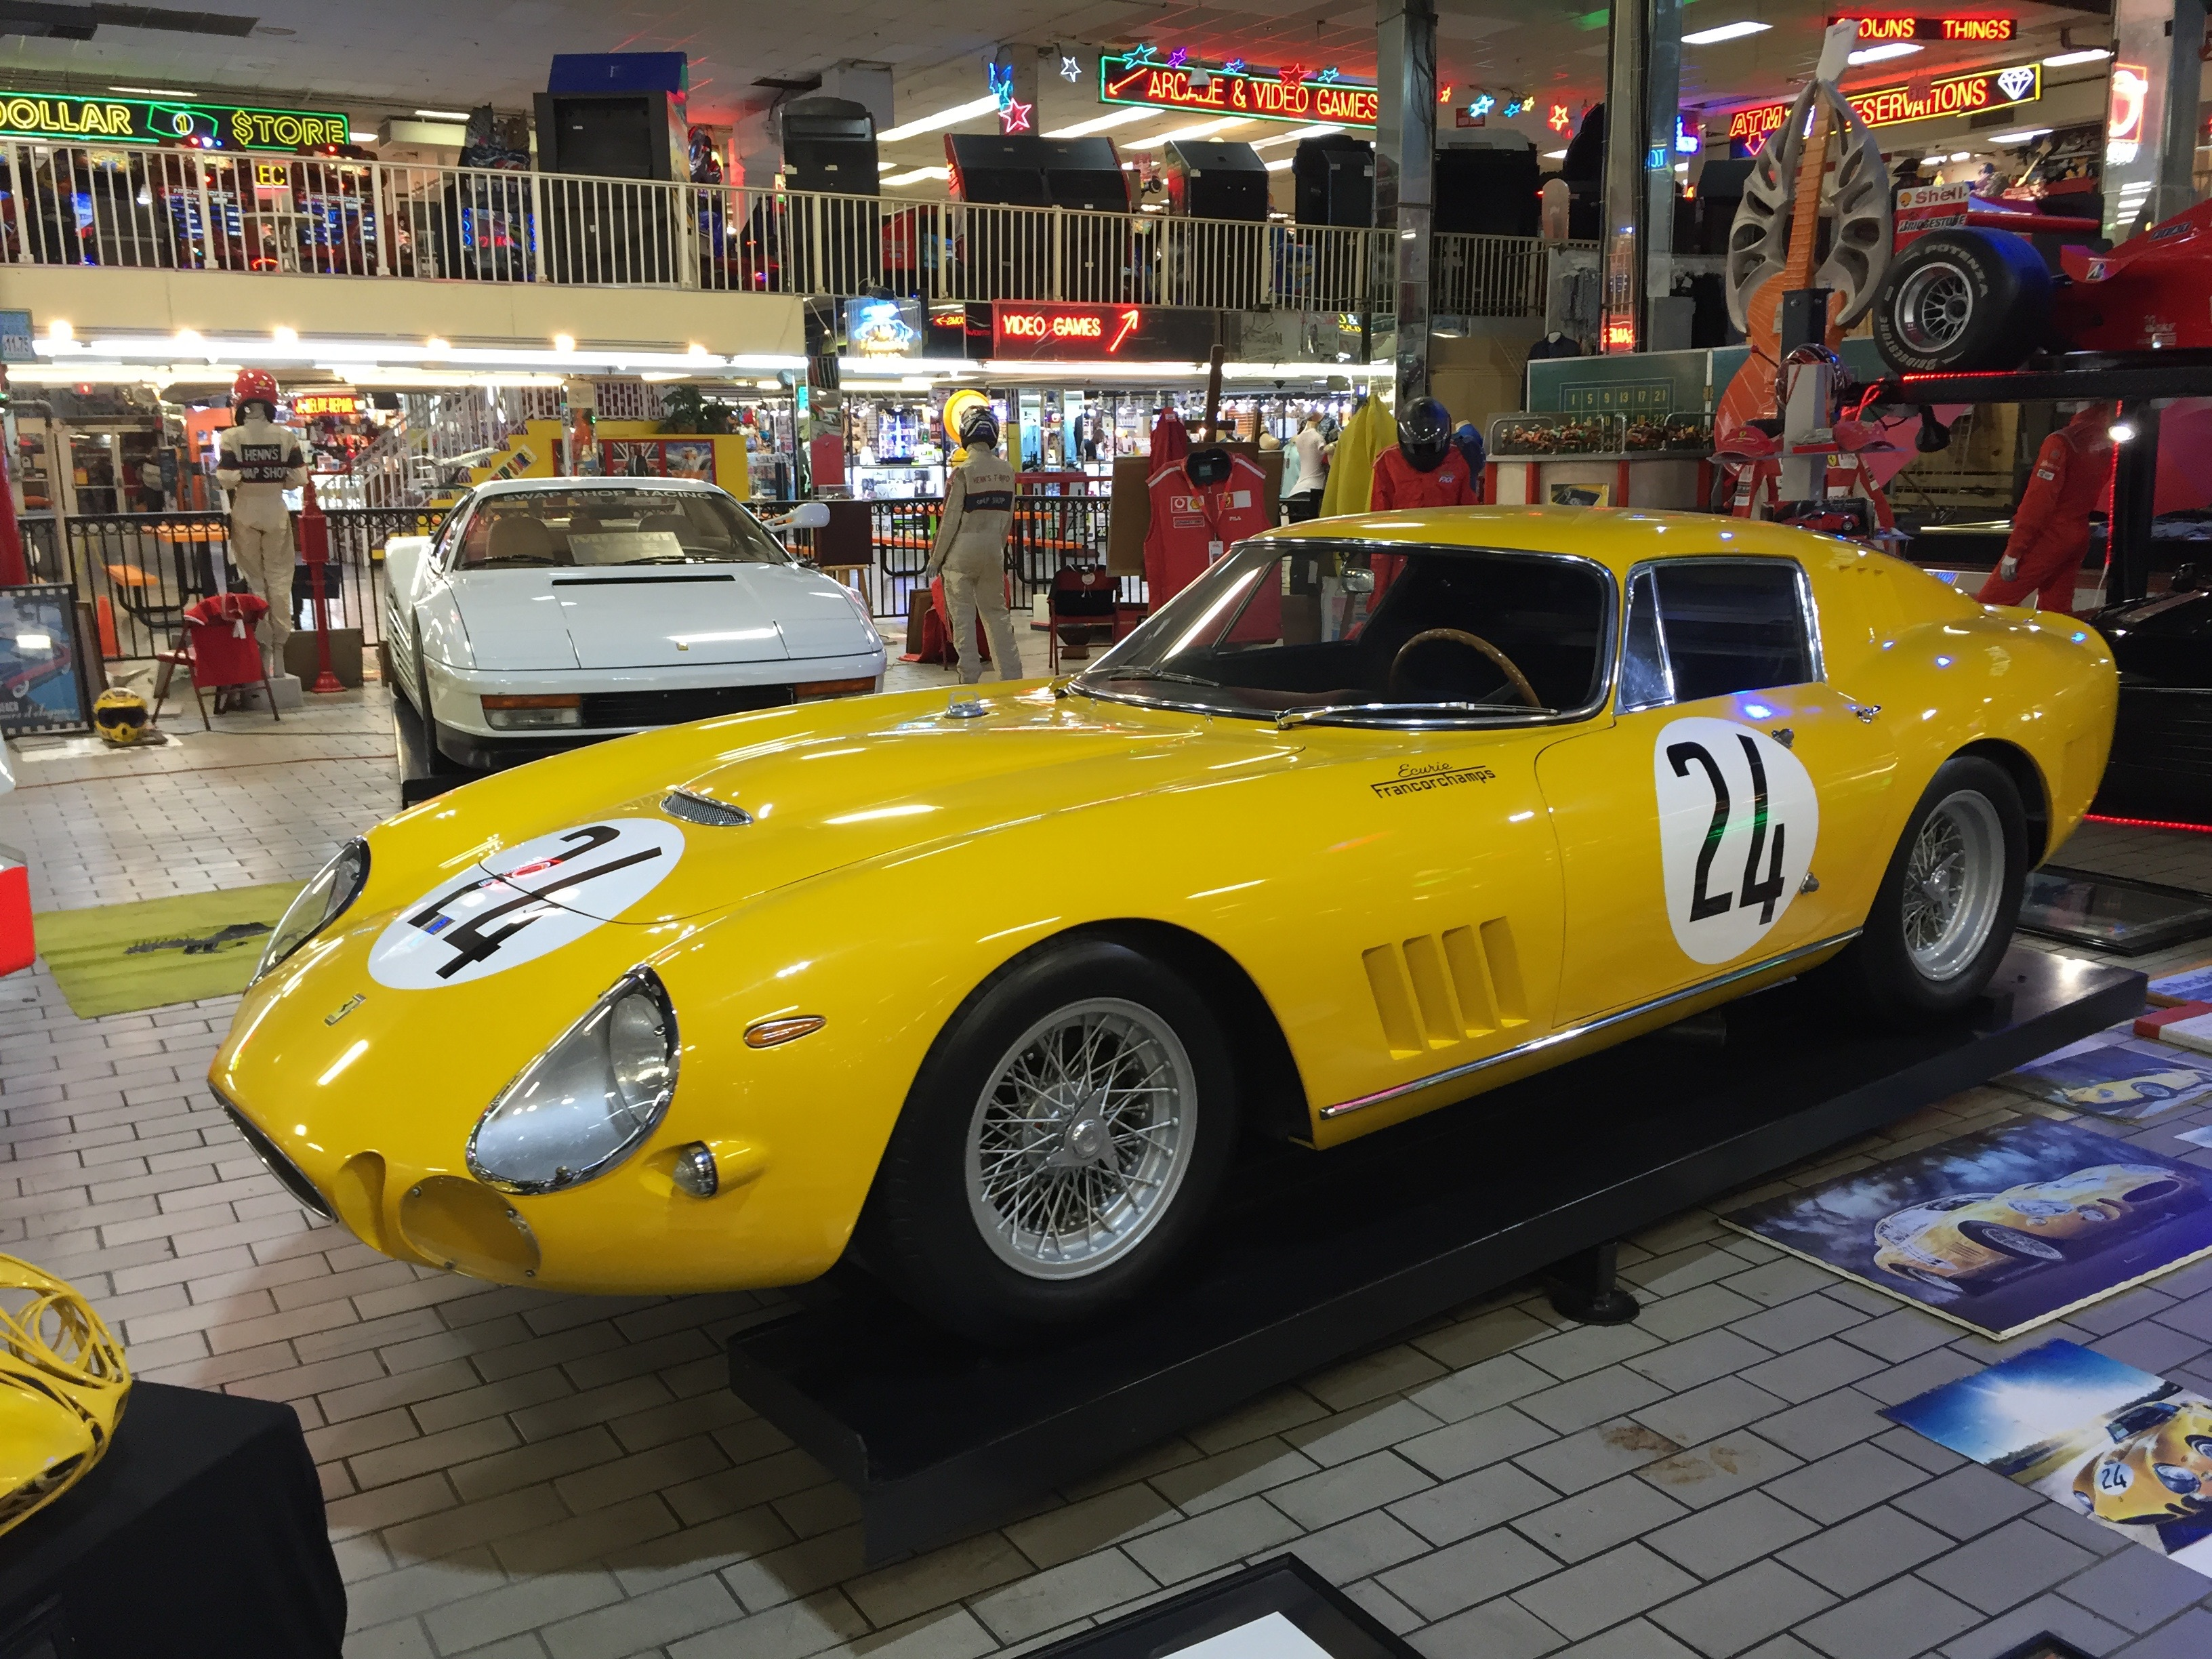 Racer and collector Preston Henn dies; could his 1964 Ferrari 275 GTB/C  Speciale go up for sale?